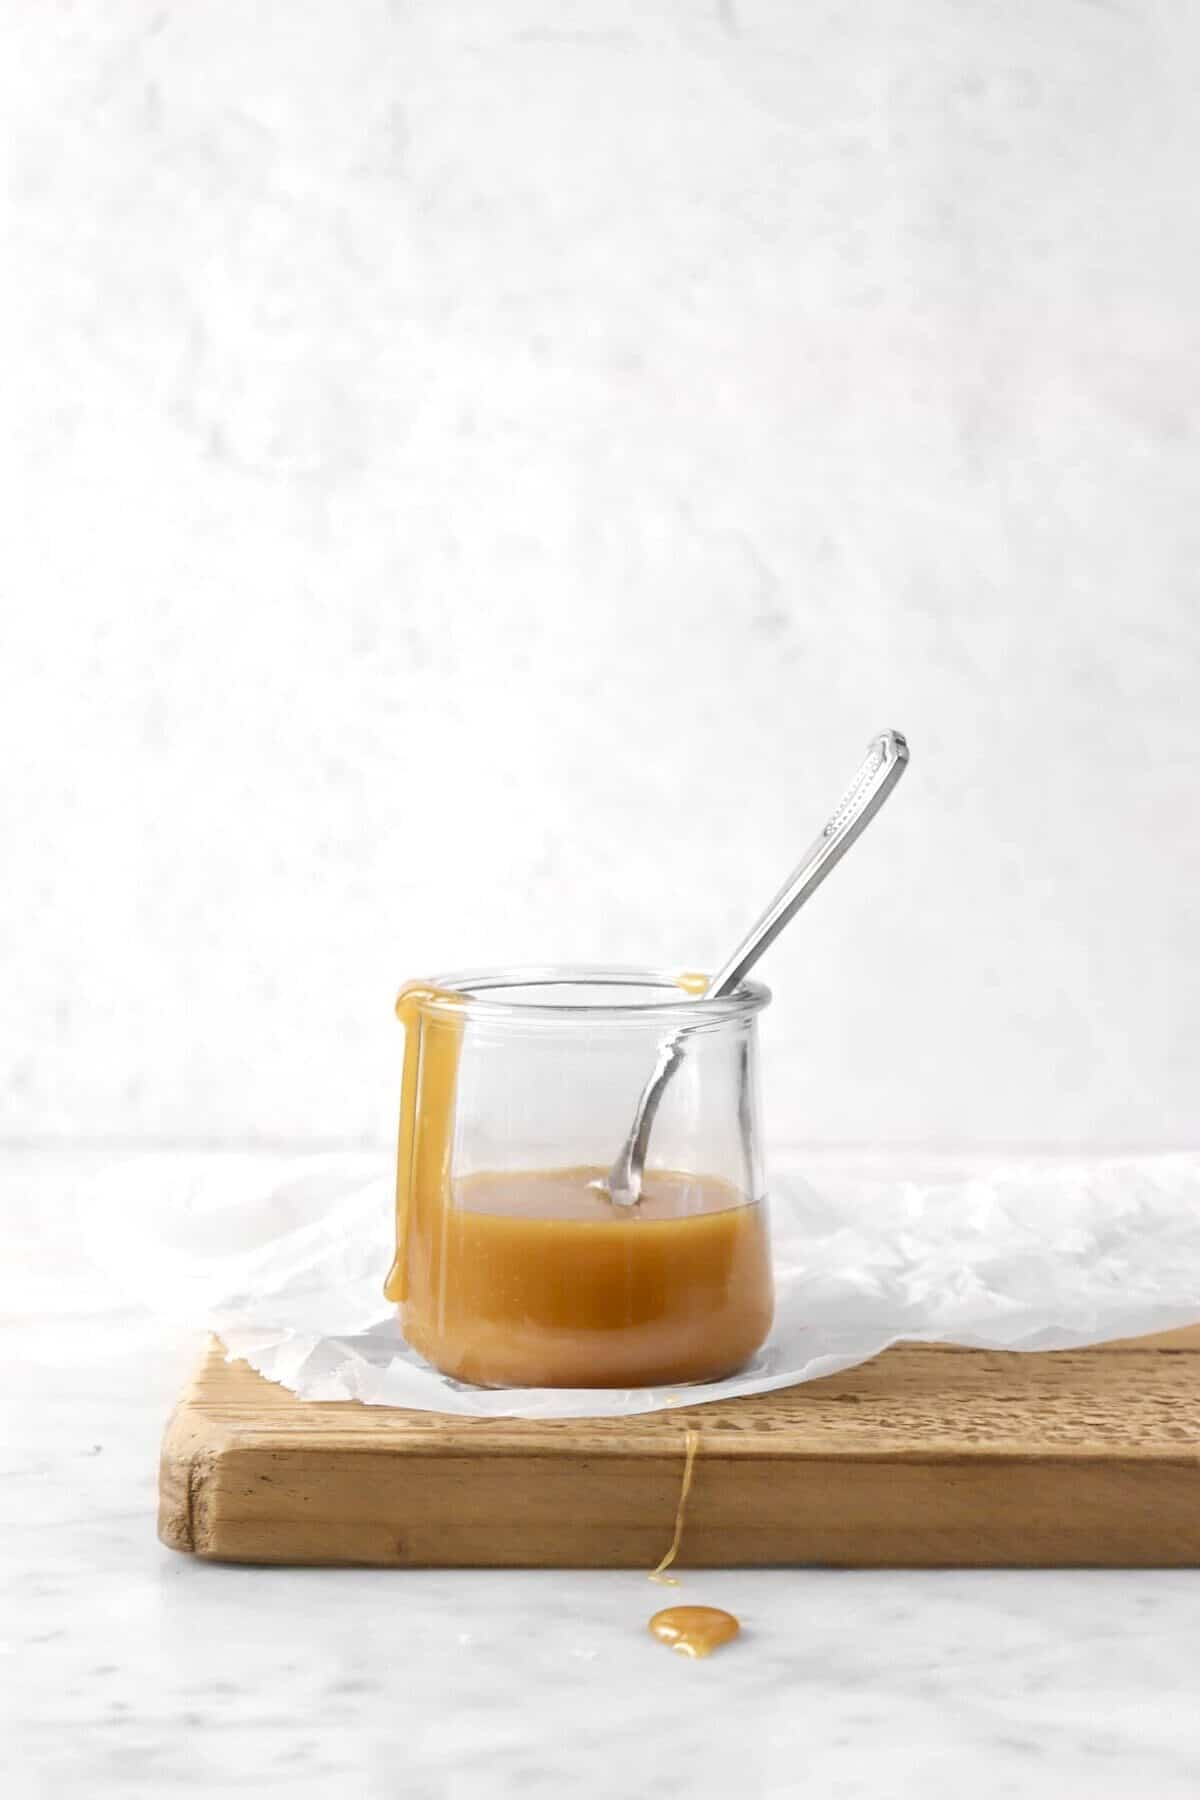 a jar of caramel sauce on a wood board with caramel running over the edge